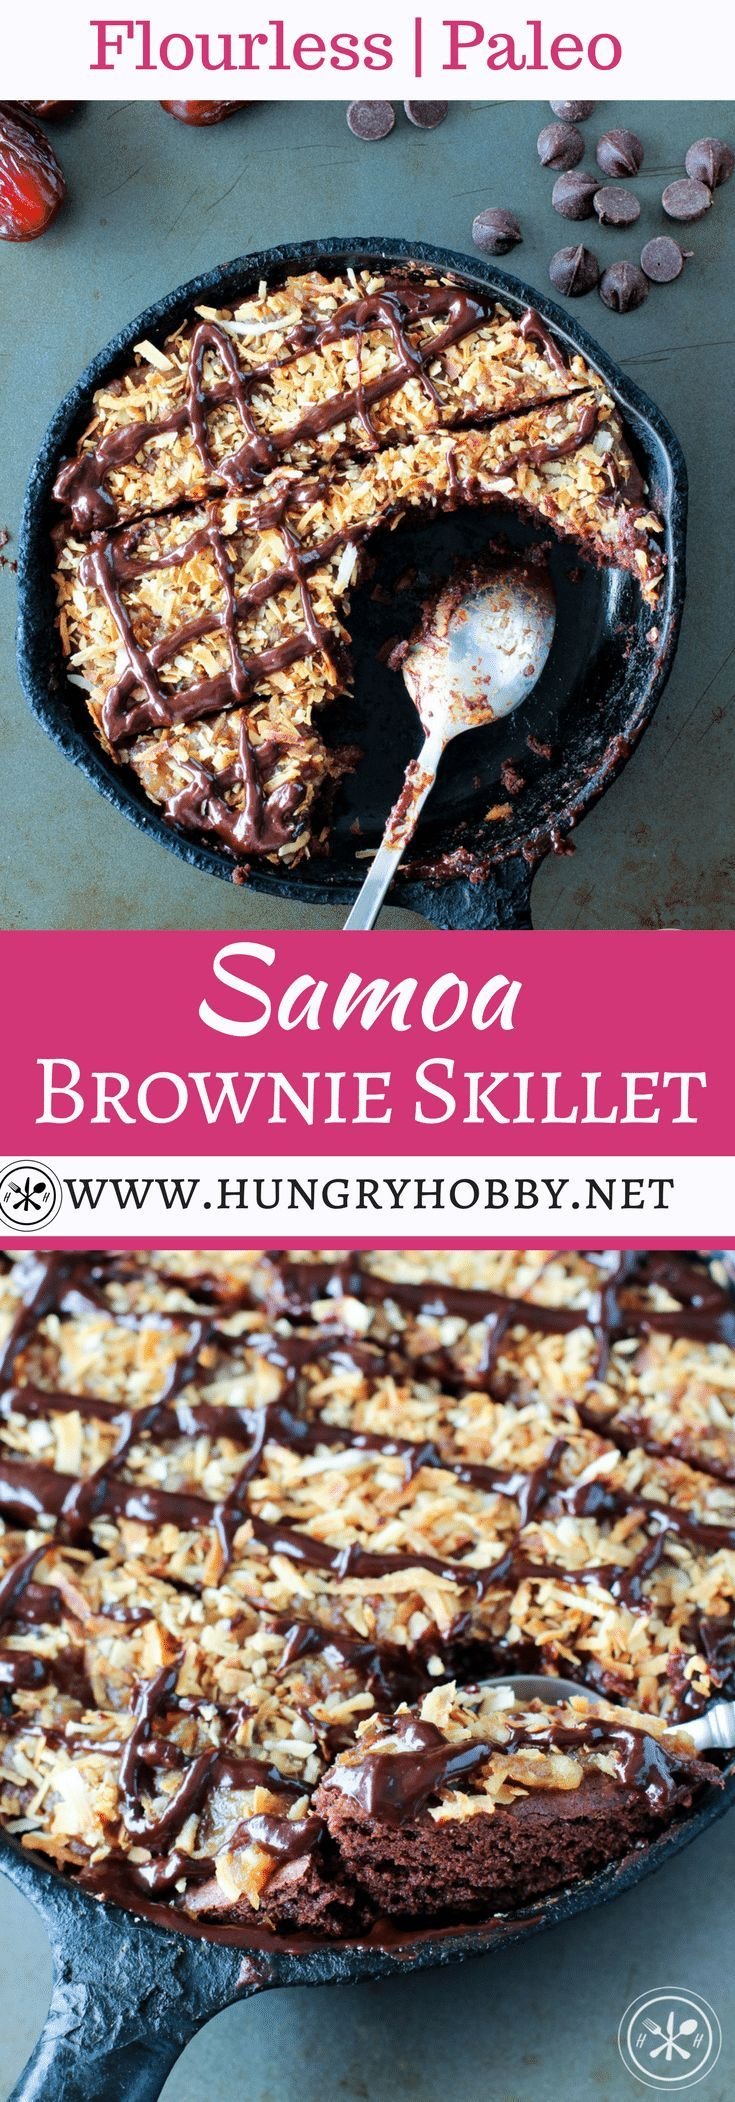 This Flourless Samoa Brownie Skillet is perfect when you want a little dessert around but not an ENTIRE batch of brownies, you feel me? Chewy fudgy brownie topped with date caramel and toasted coconut flakes, it's good, REAL good! #hungryhobby #glutenfree #dairyfree  via @hungryhobby